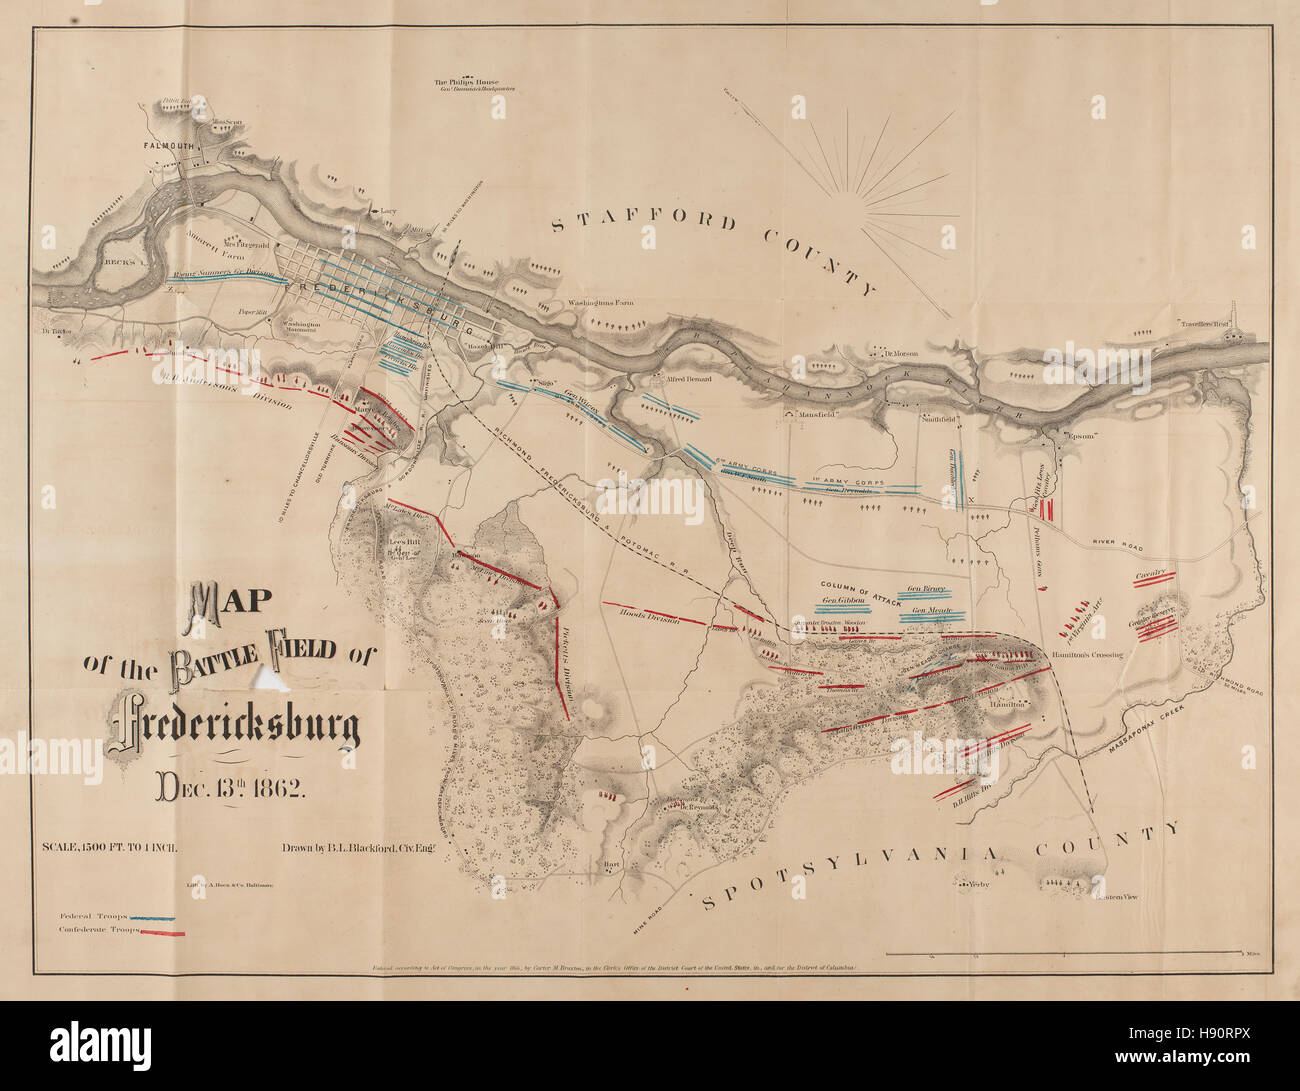 Fredericksburg Virginia Map.Map Of The Battle Field Of Fredericksburg Virginia Stock Photo